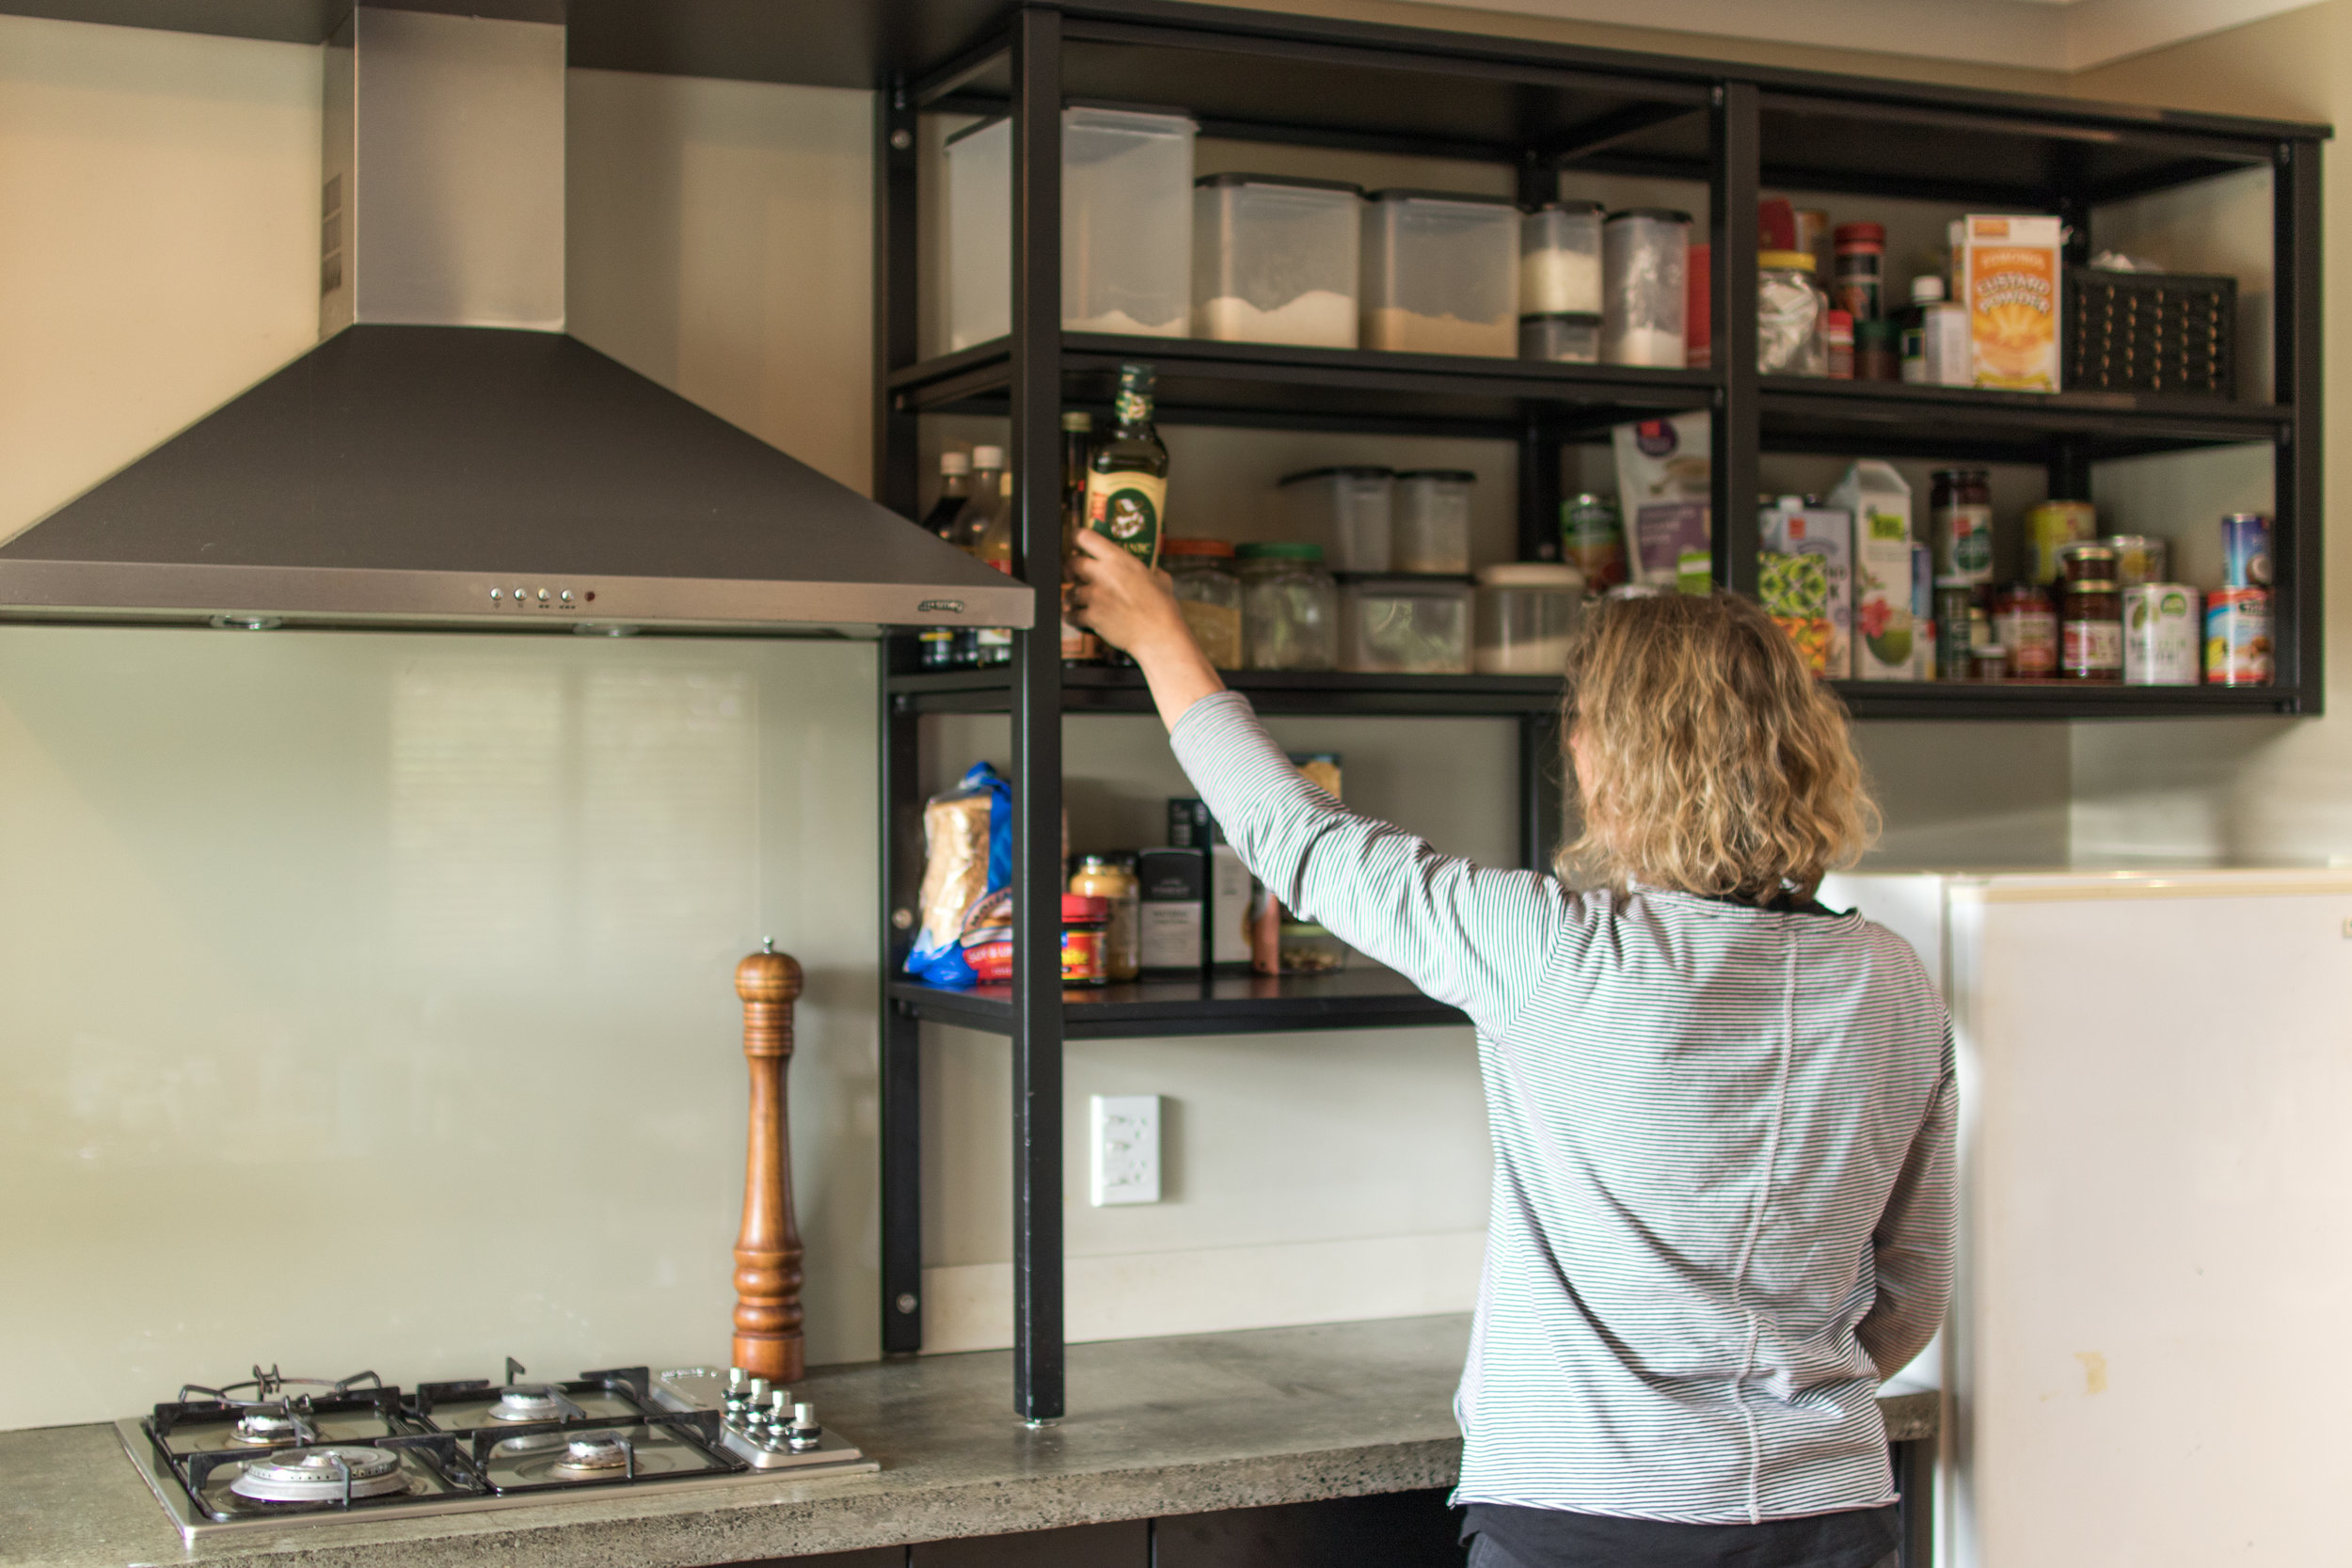 Kitchen Shelving - Clean storage for the kitchen.